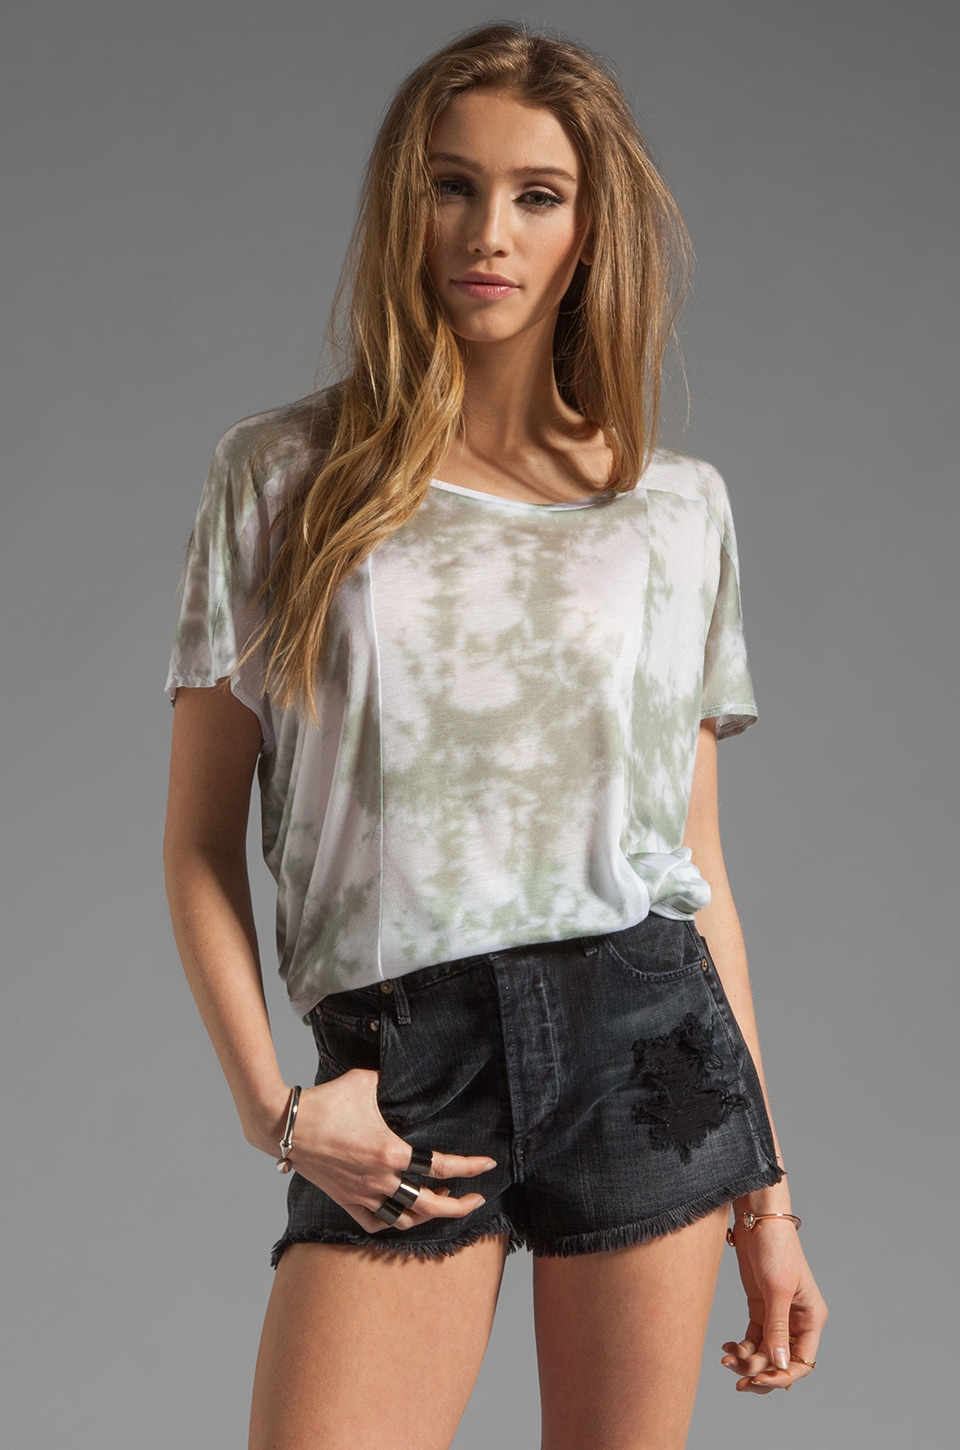 A Fine Line Quinn Top in Charcoal Ink